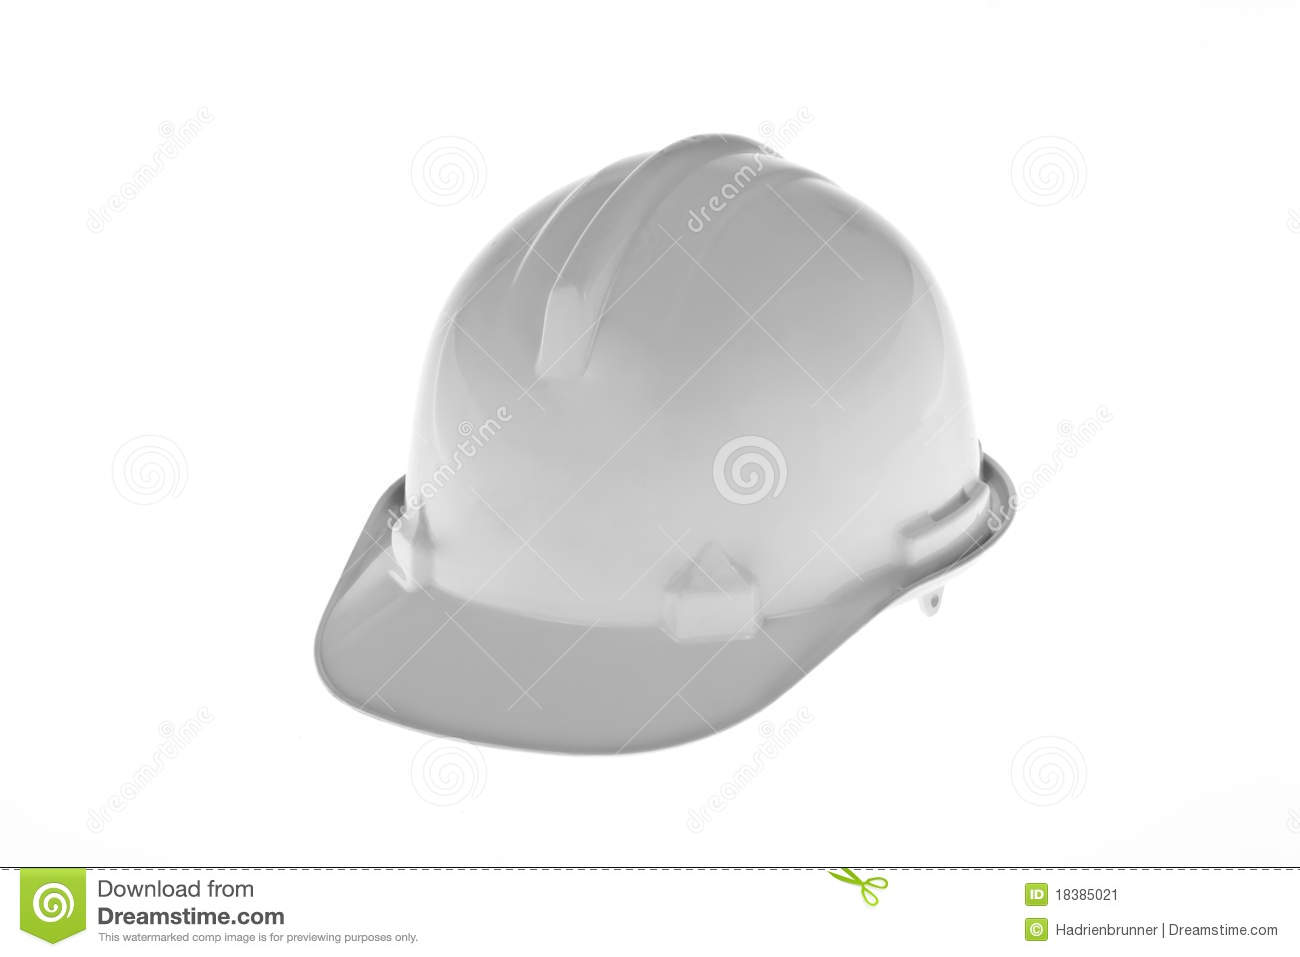 A white construction worker hard hat isolated against a white background 958cd43a4ad